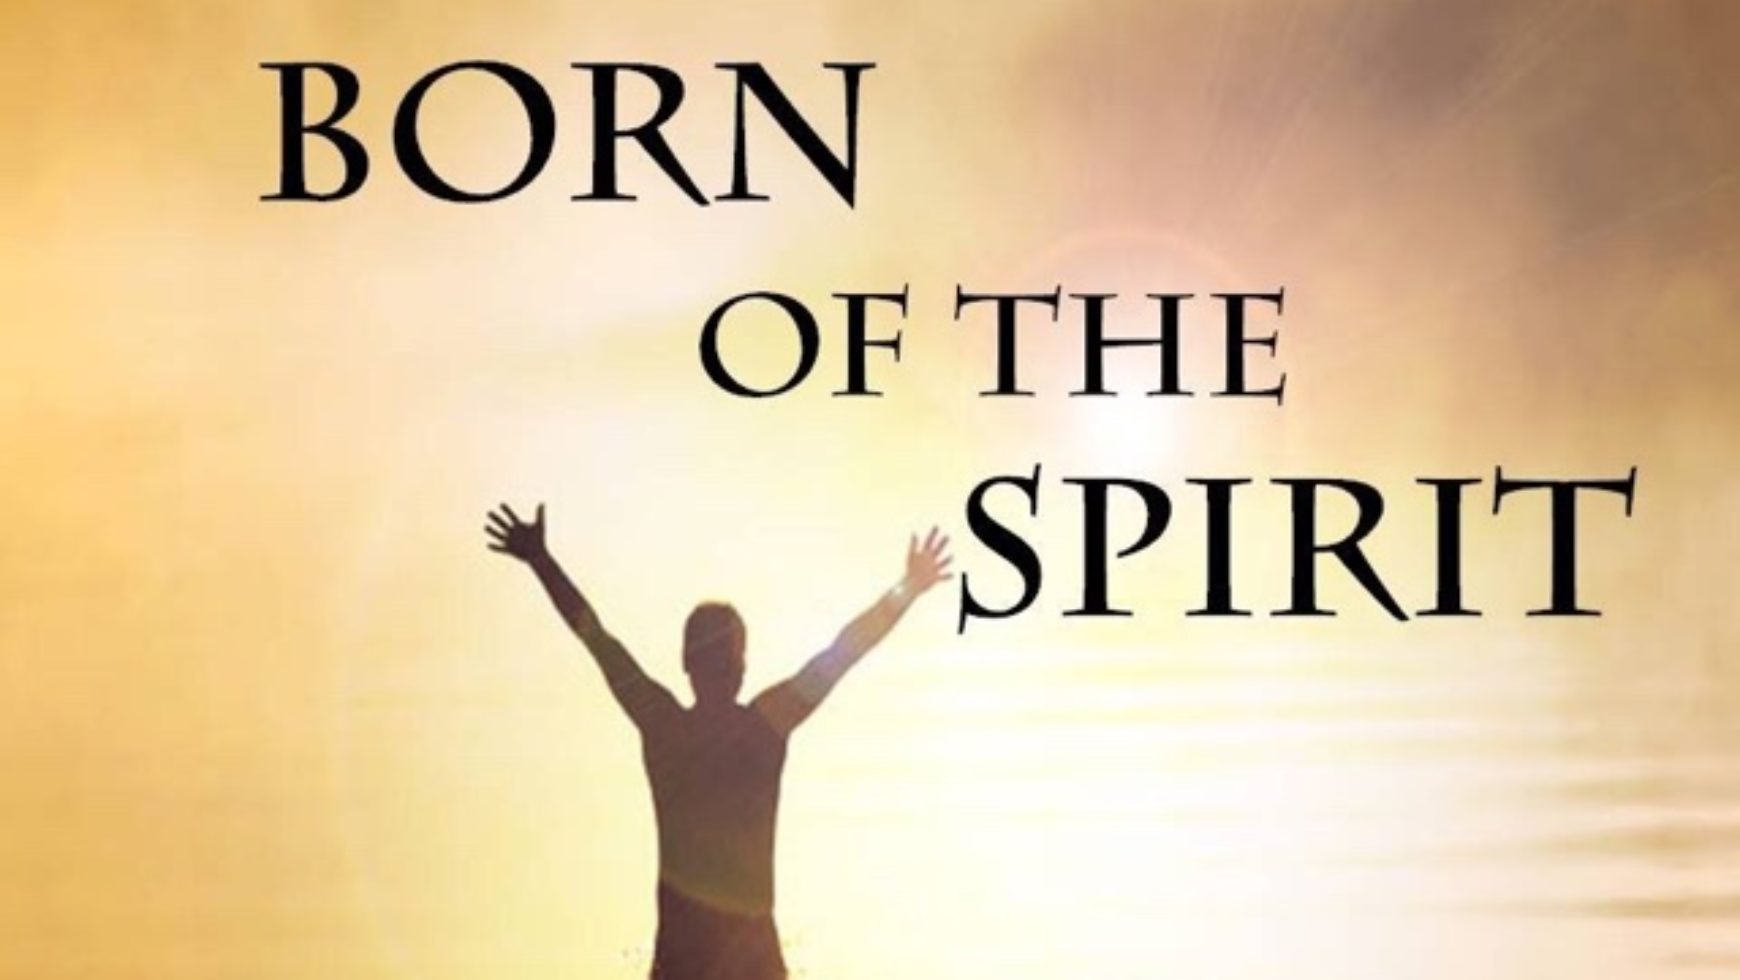 We are born of the Spirit of the Living God